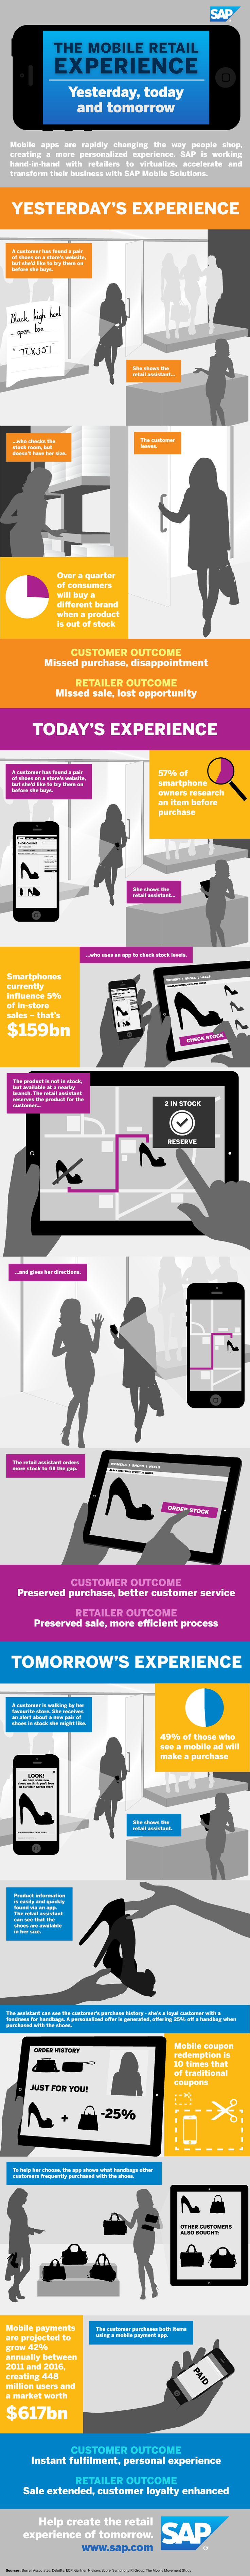 Mobile Retail Infographic - past, today and future